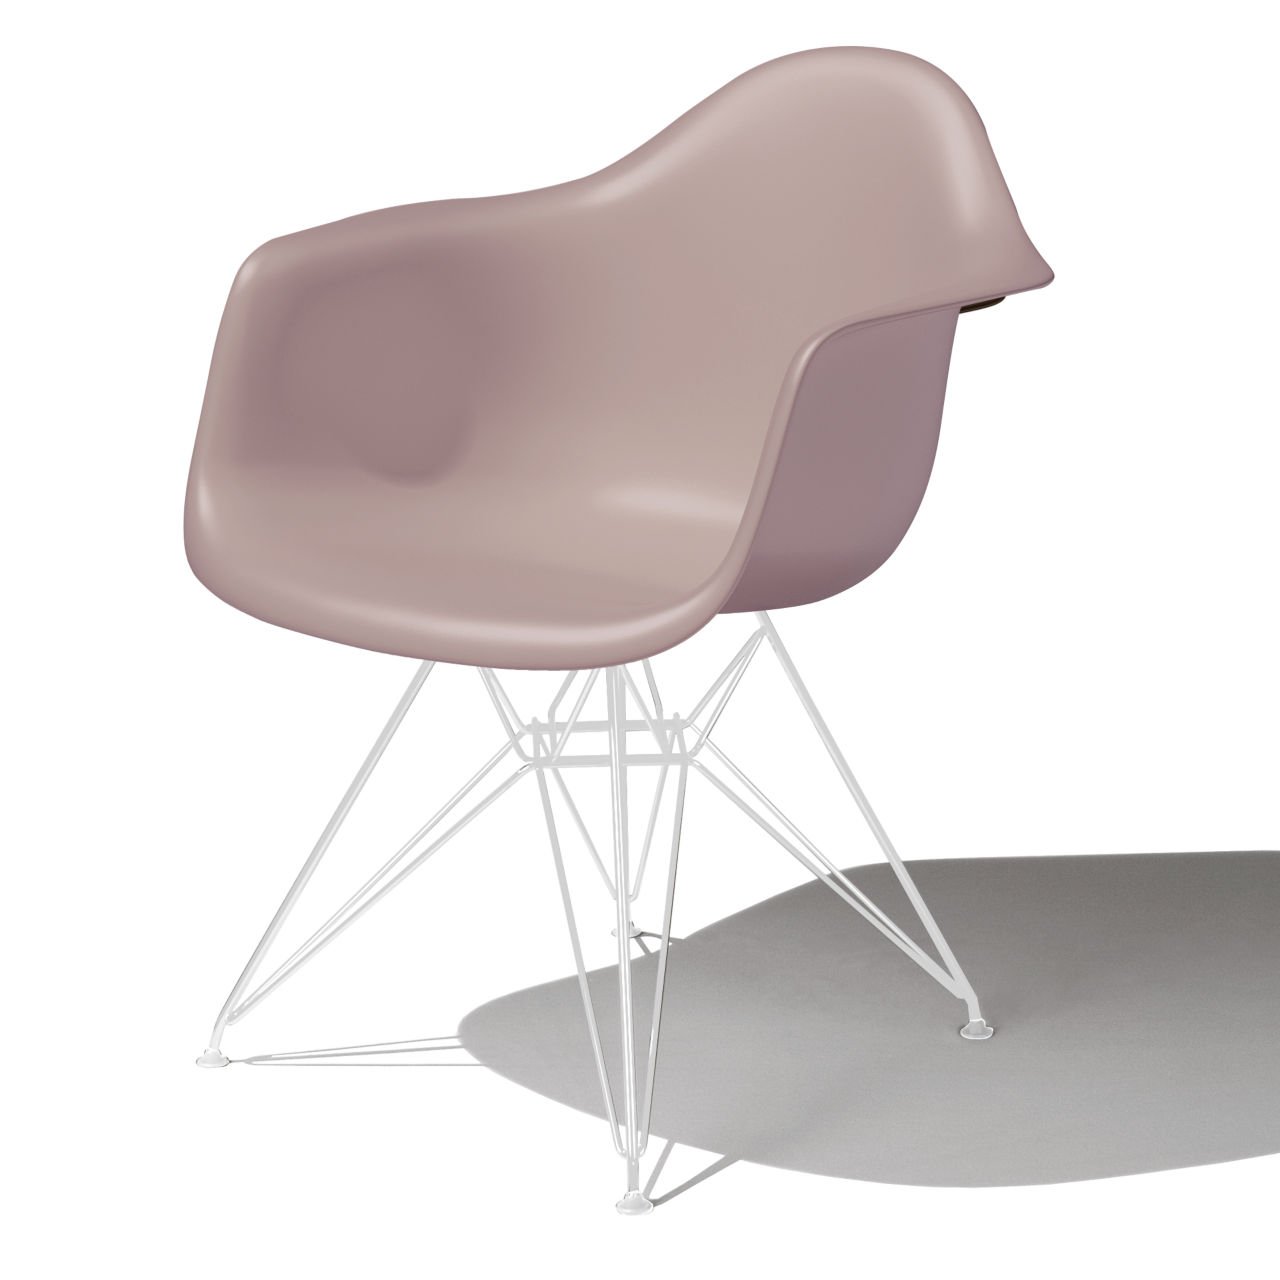 Eames Molded Plastic Armchair in Stone by Herman Miller